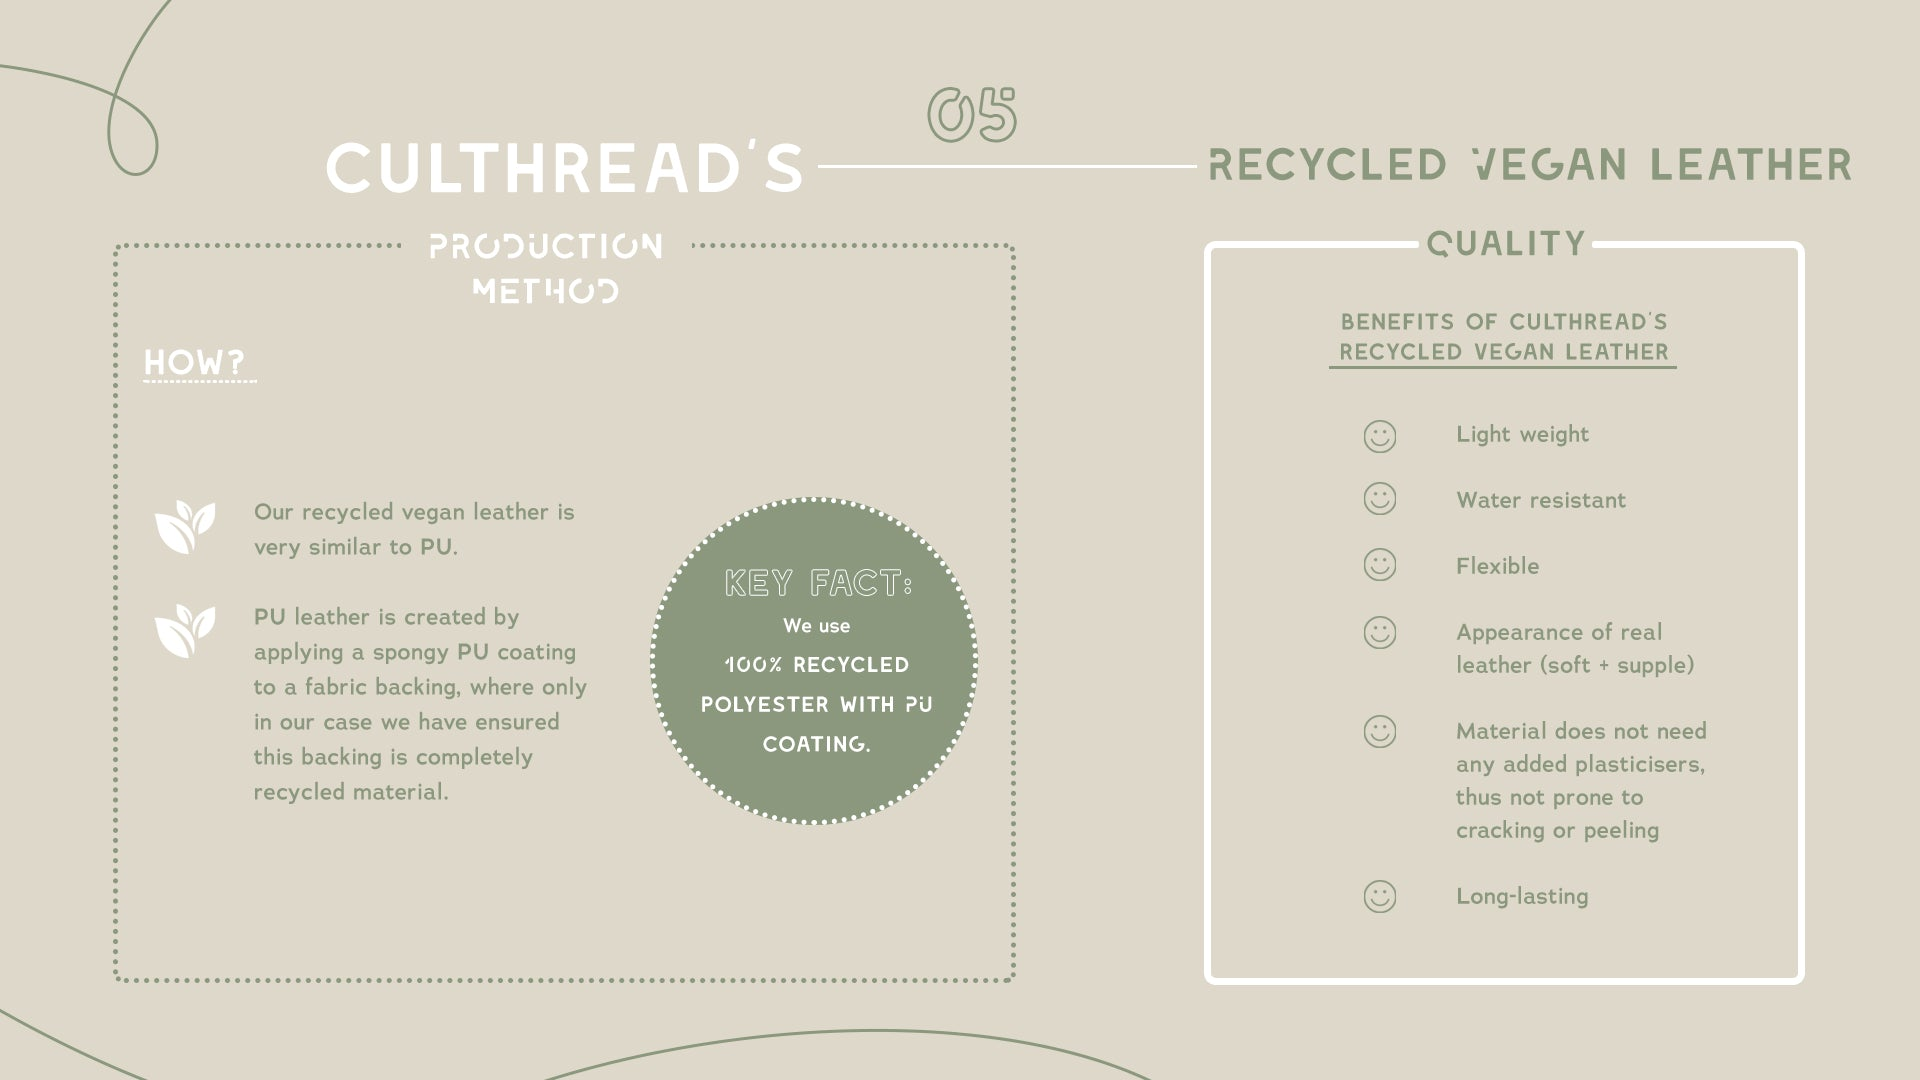 culthread recycled vegan leather